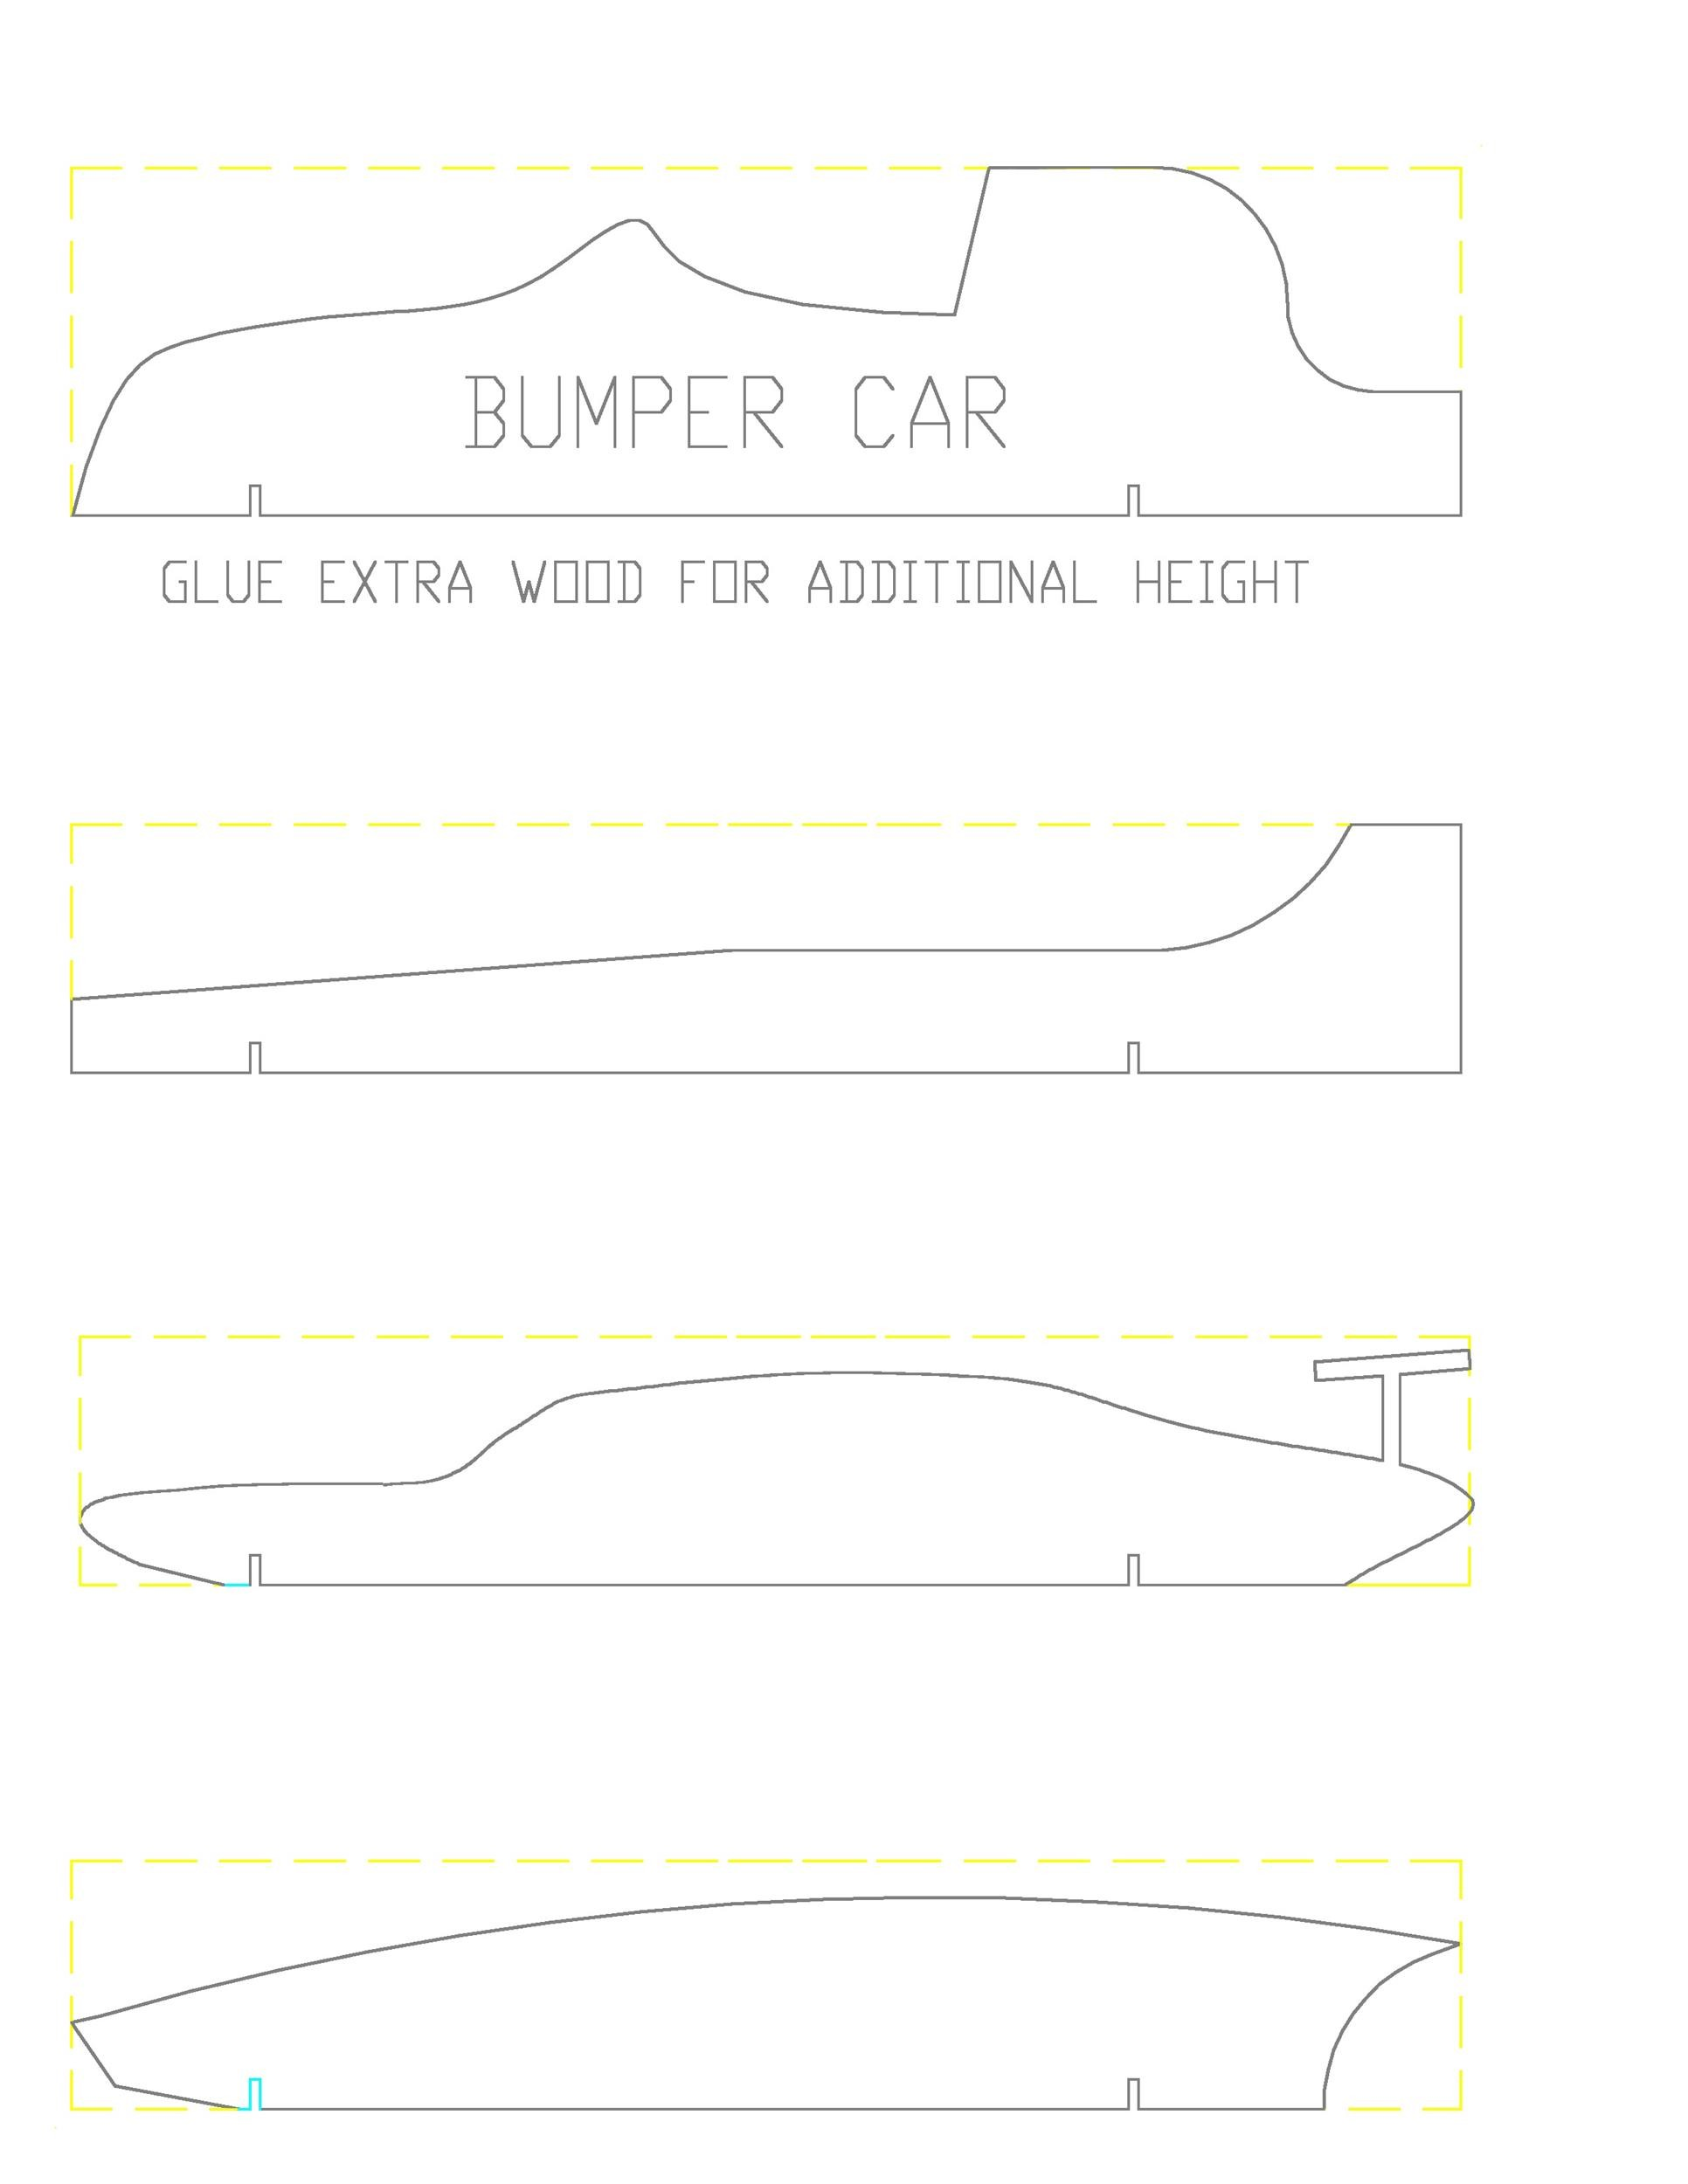 photo relating to Free Pinewood Derby Templates Printable titled 39 Amazing Pinewood Derby Vehicle Options Templates ᐅ